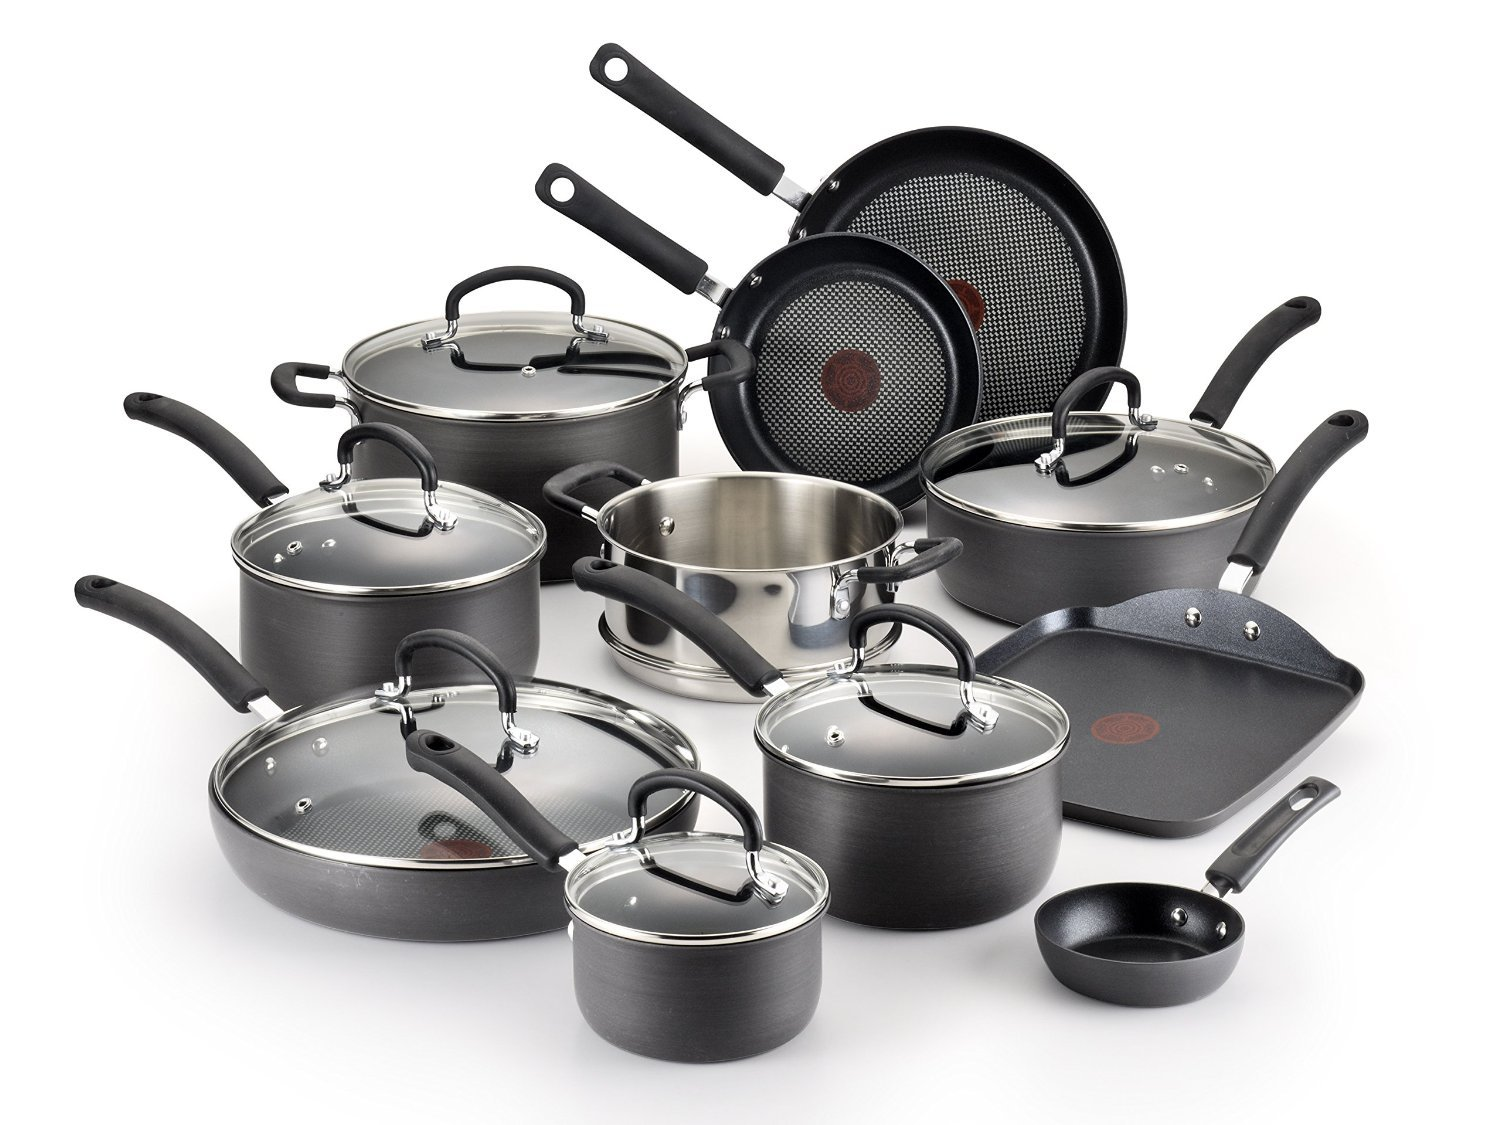 T-fal Hard-Anodized Cookware Set